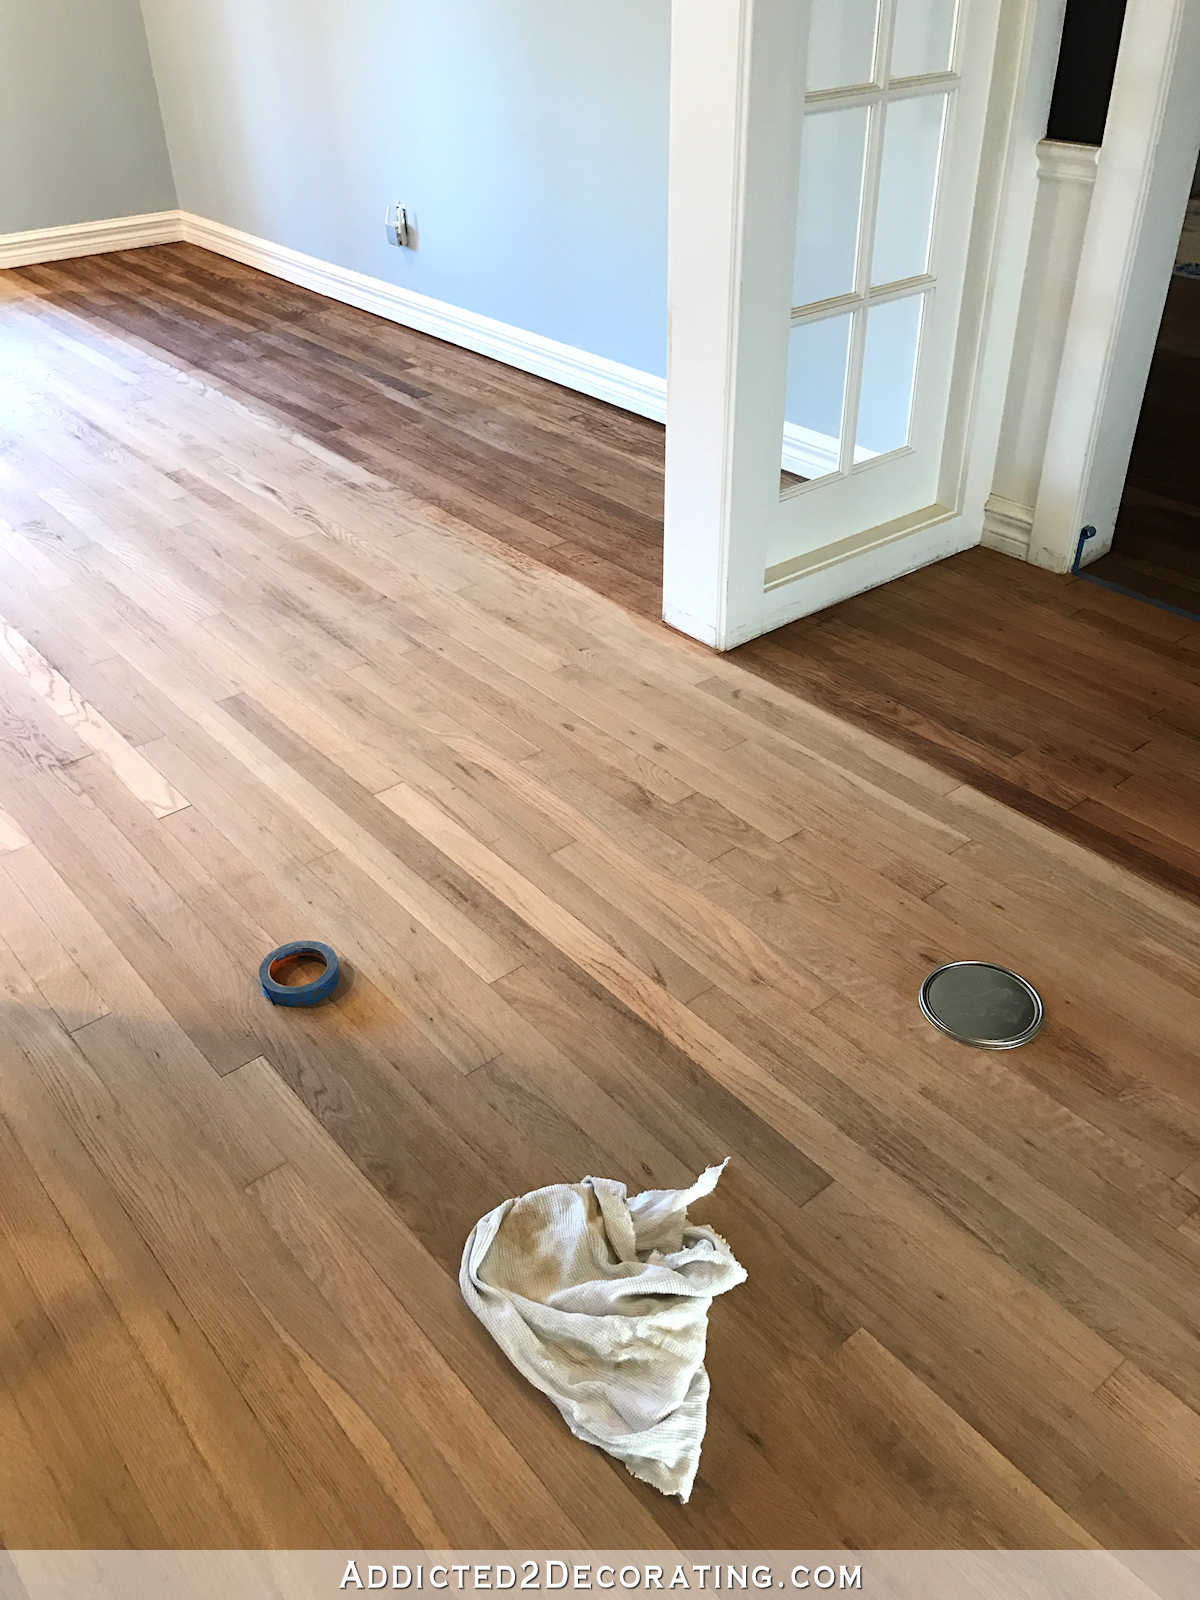 hardwood floor buffing pads of adventures in staining my red oak hardwood floors products process intended for staining red oak hardwood floors 3 entryway and music room